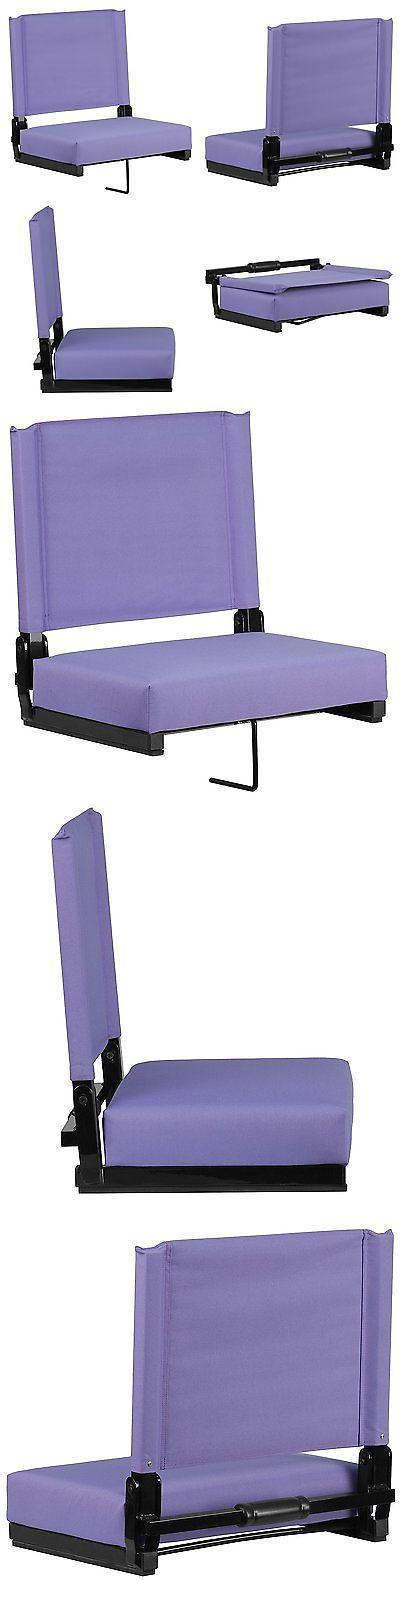 Other Outdoor Sports 159048: Bleacher Seats With Backs Purple Stadium Chair Cushion Comfy Portable New! BUY IT NOW ONLY: $47.75